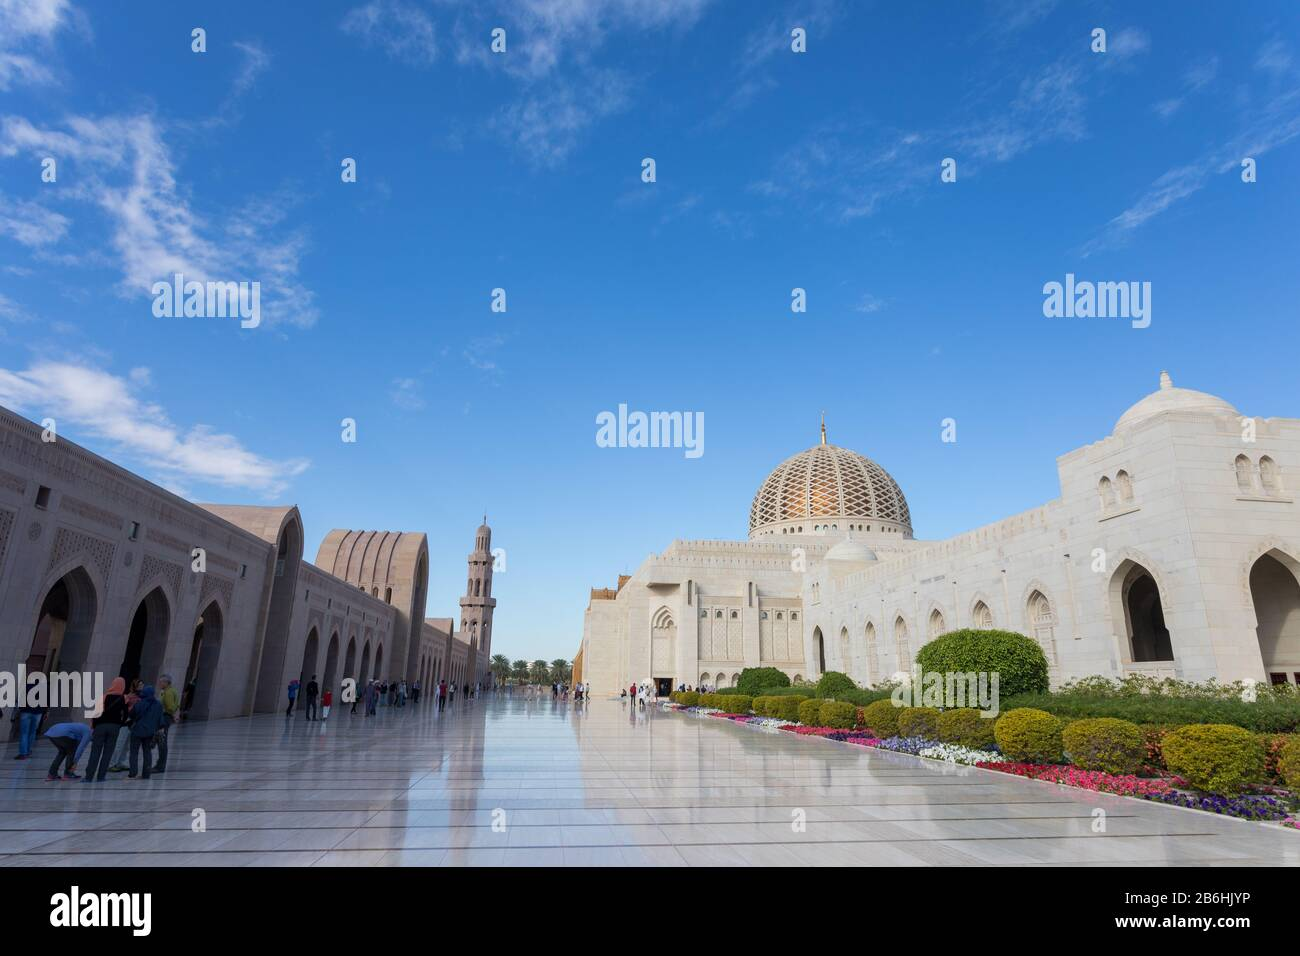 Muscat, Oman. Dec 2019: details of the Sultan Qaboos Grand Mosque. Sultanate of Oman. Stock Photo